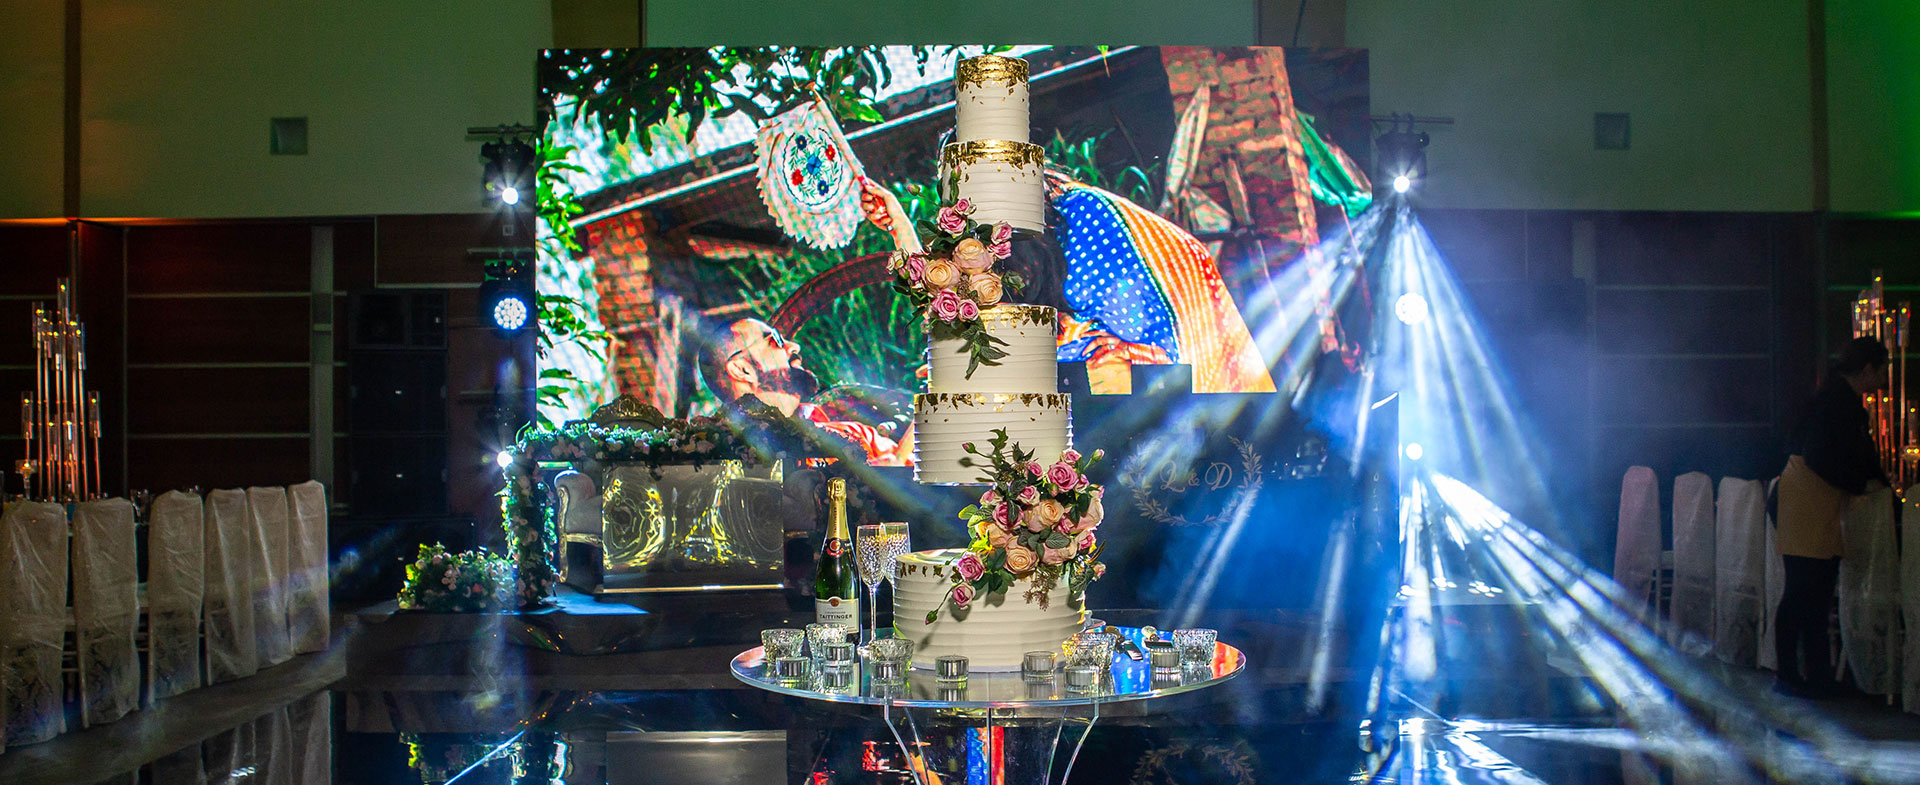 7 Tier Side Floating Wedding Cake with Florals Full